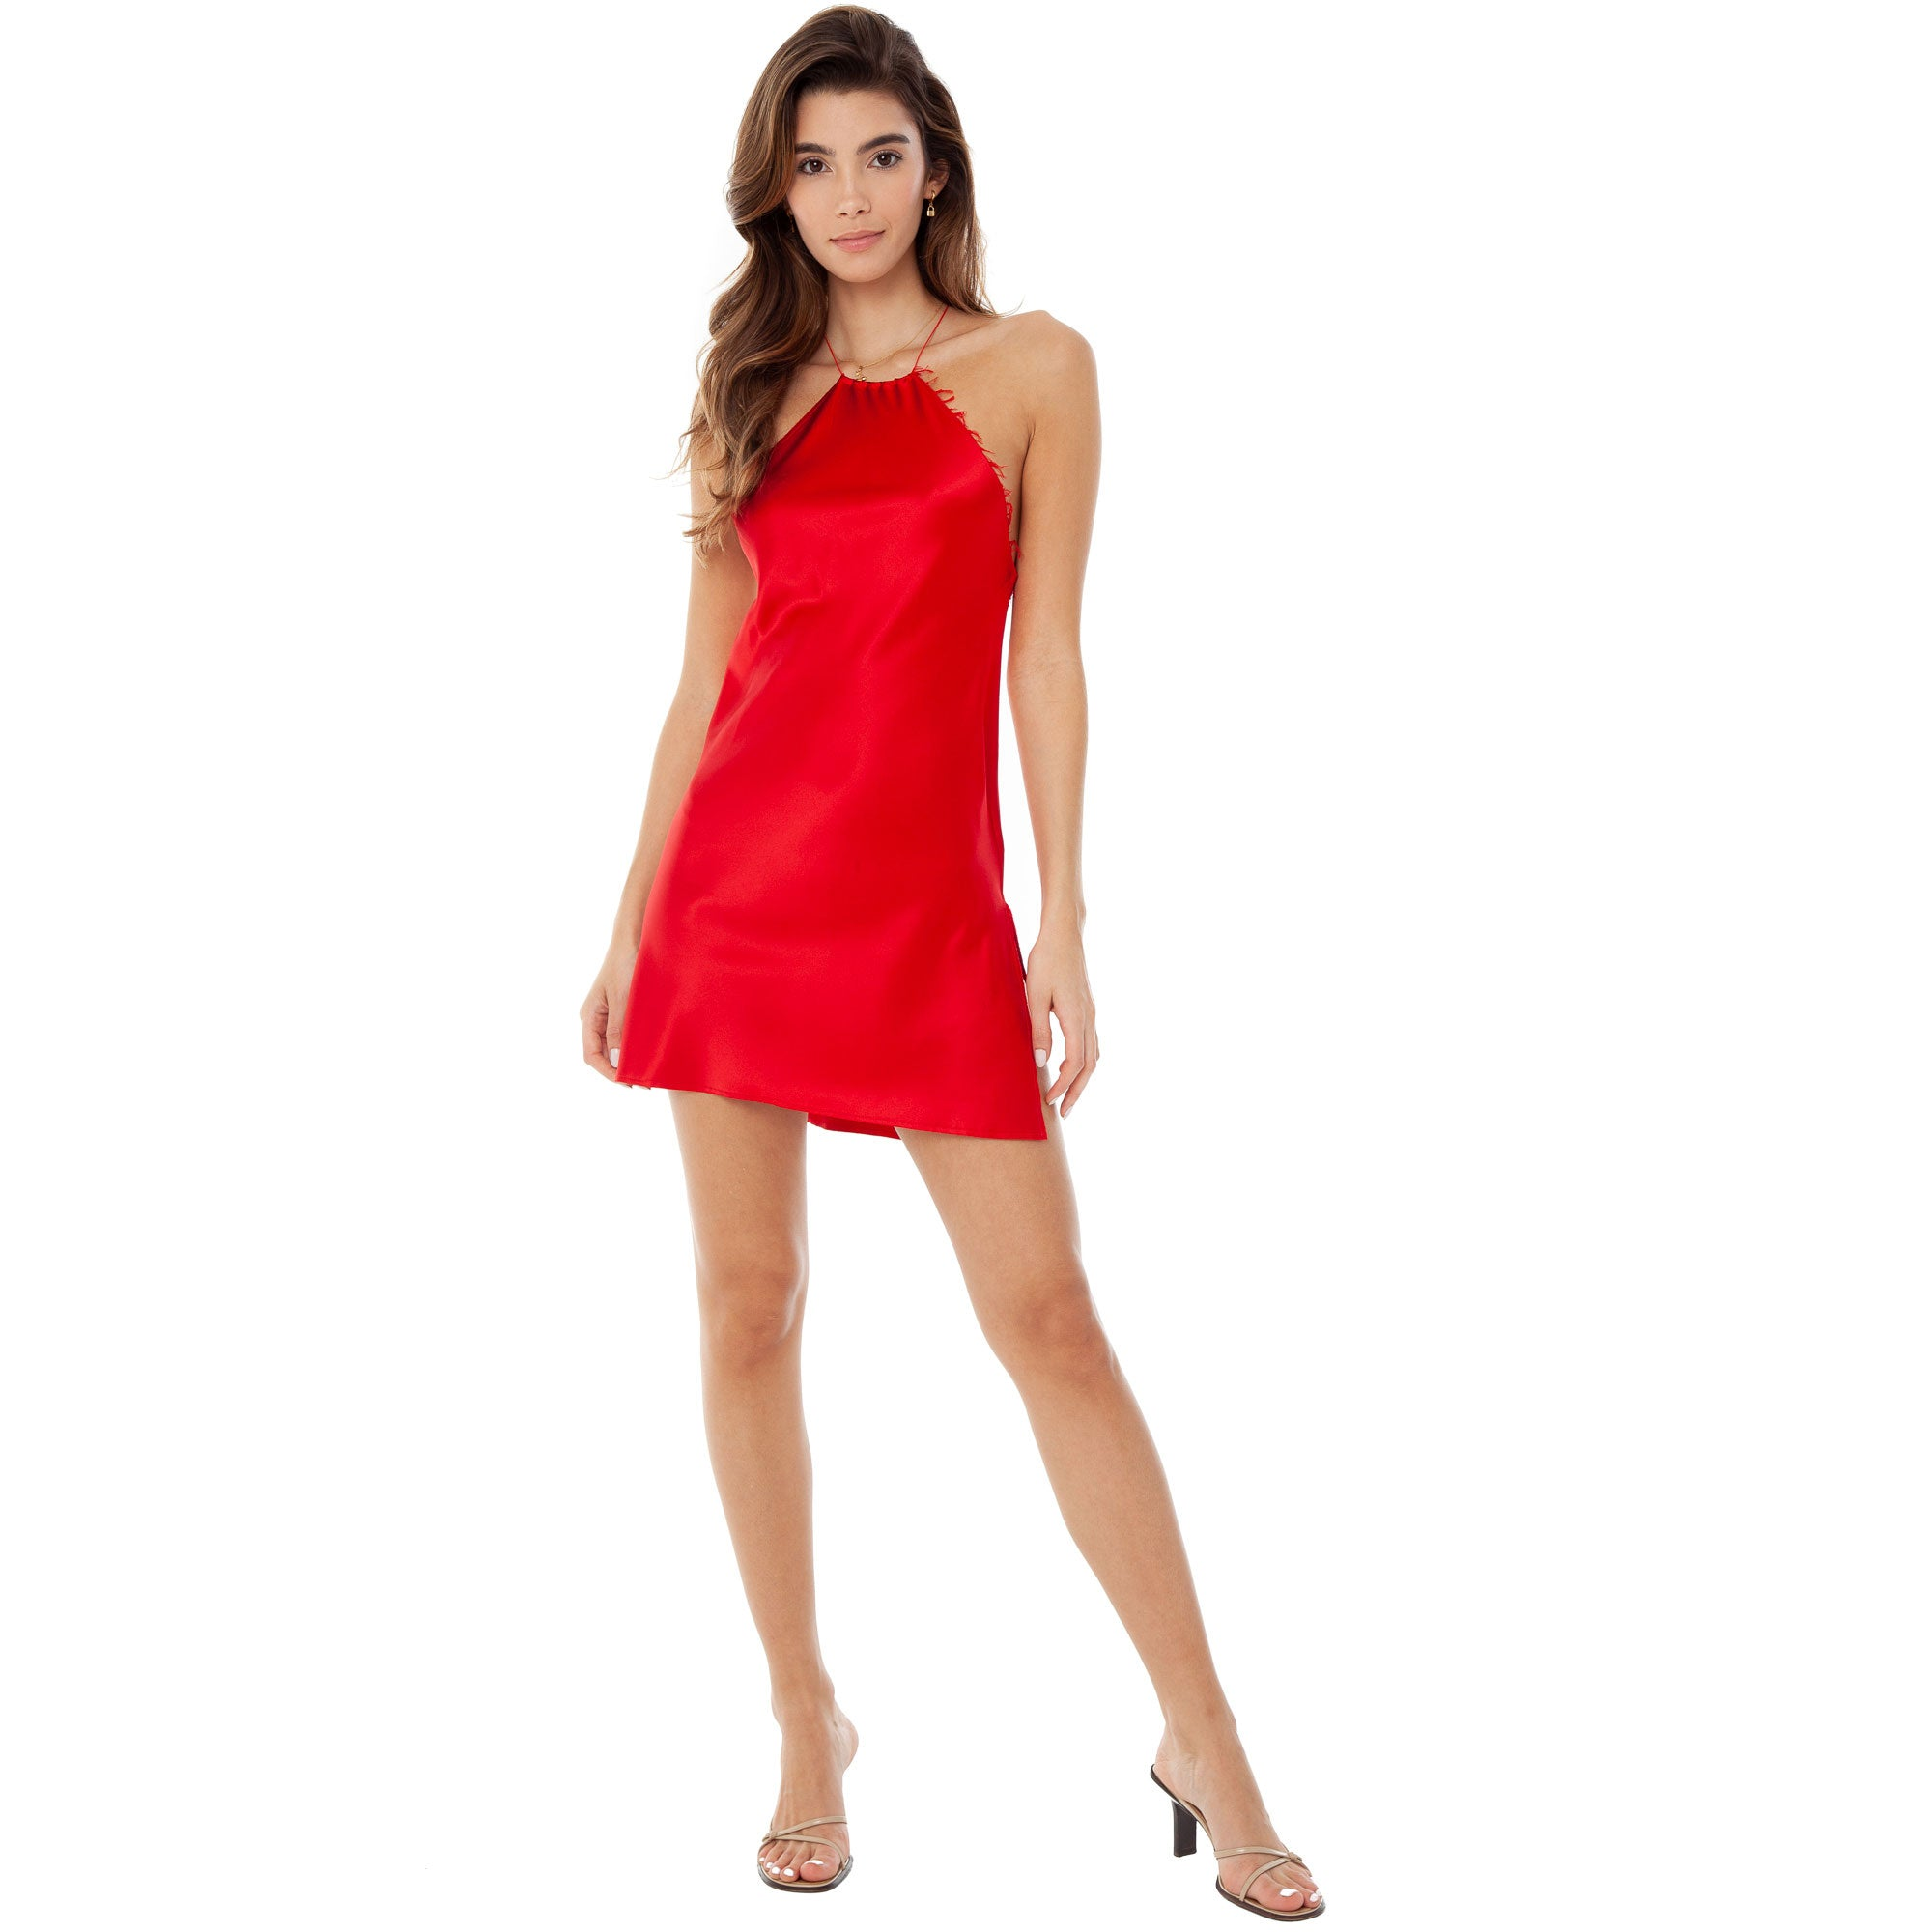 Are You Am I - Senna Dress **cherry red